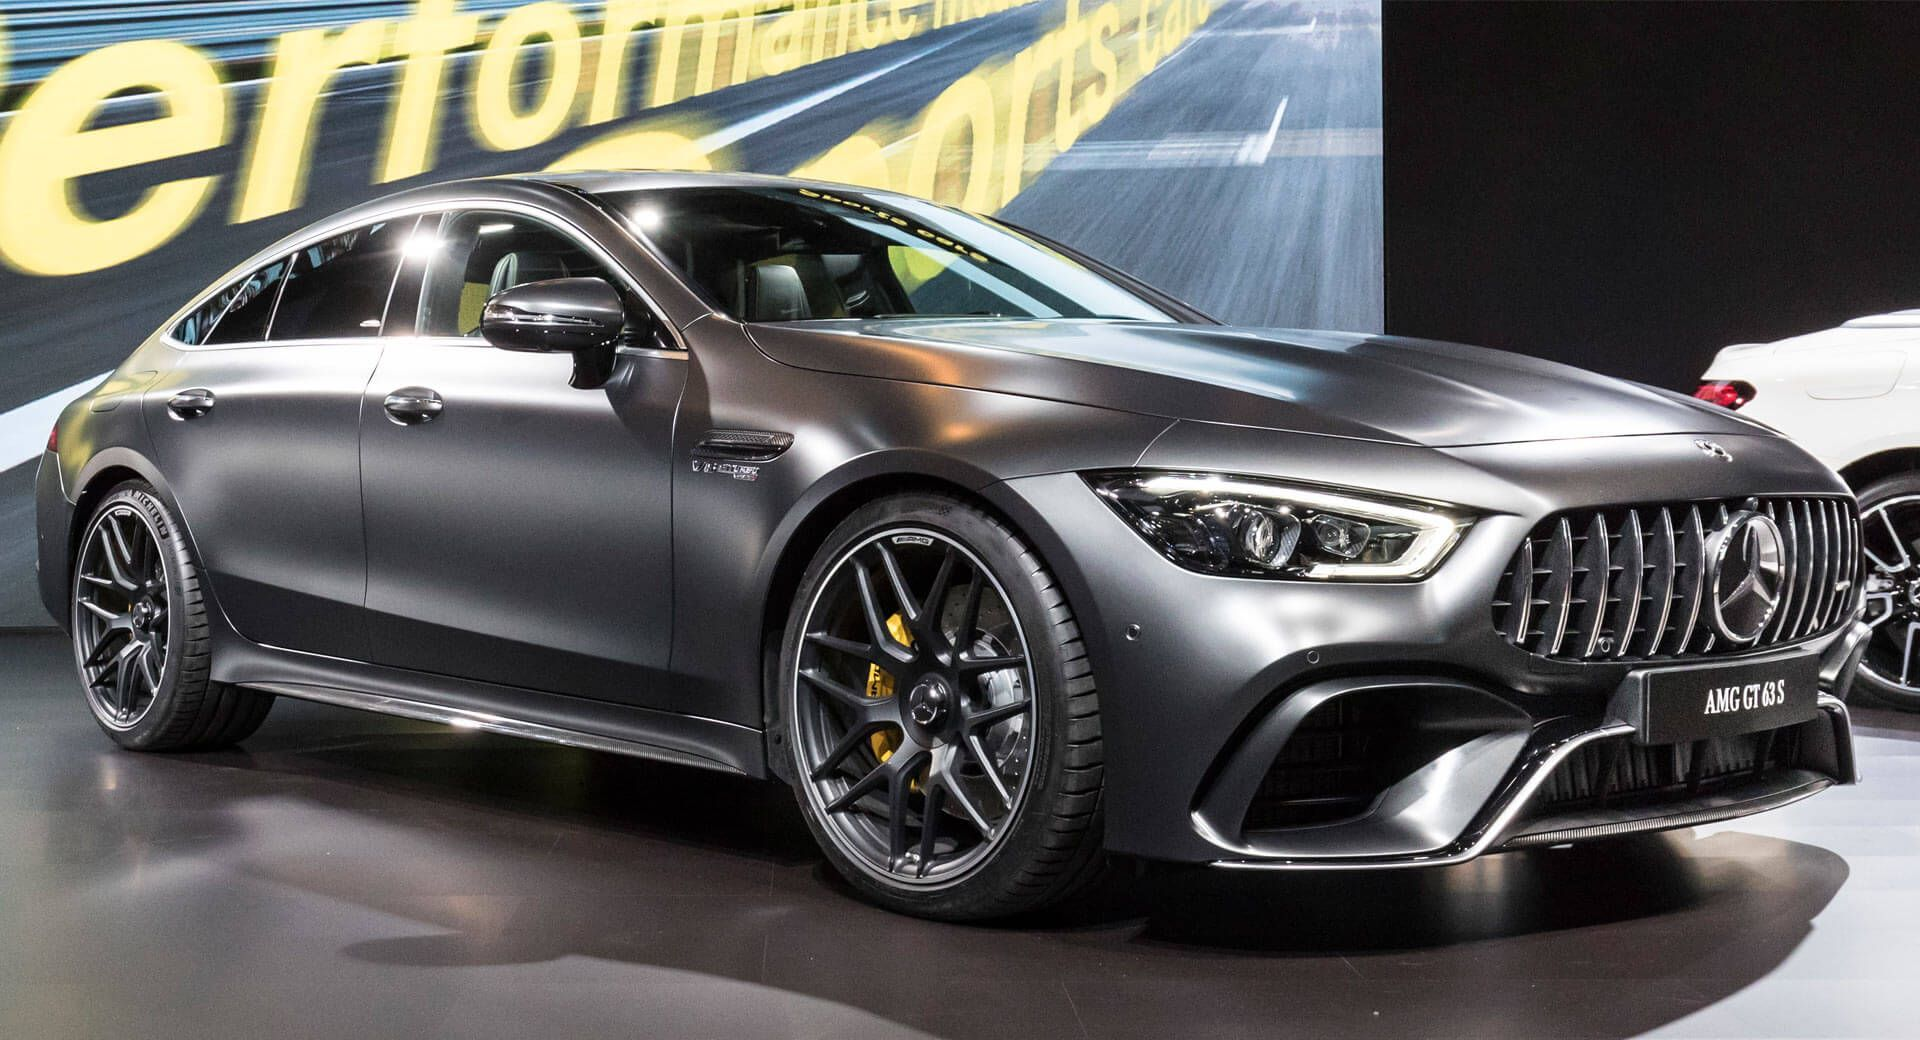 Mercedes Amg Gt 4 Door Coupe Brings Its Identity Crisis To America Autos Carro Deportivos